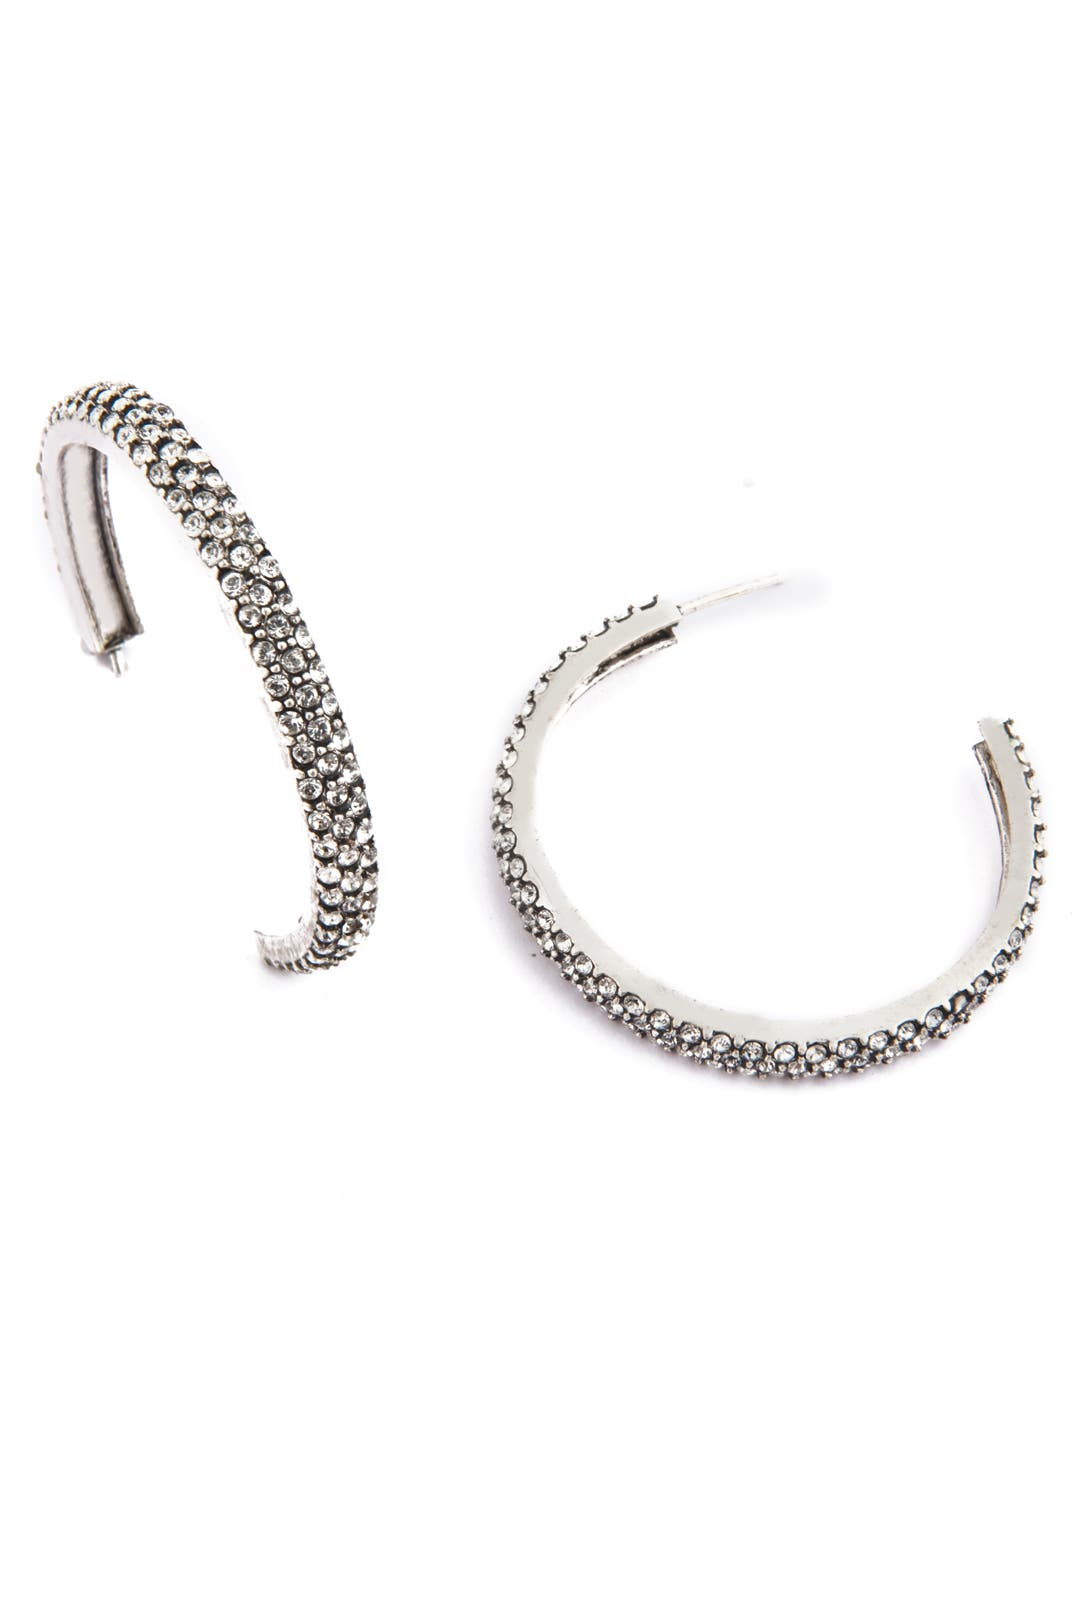 Silver Crystal Hoop Earrings by Azaara